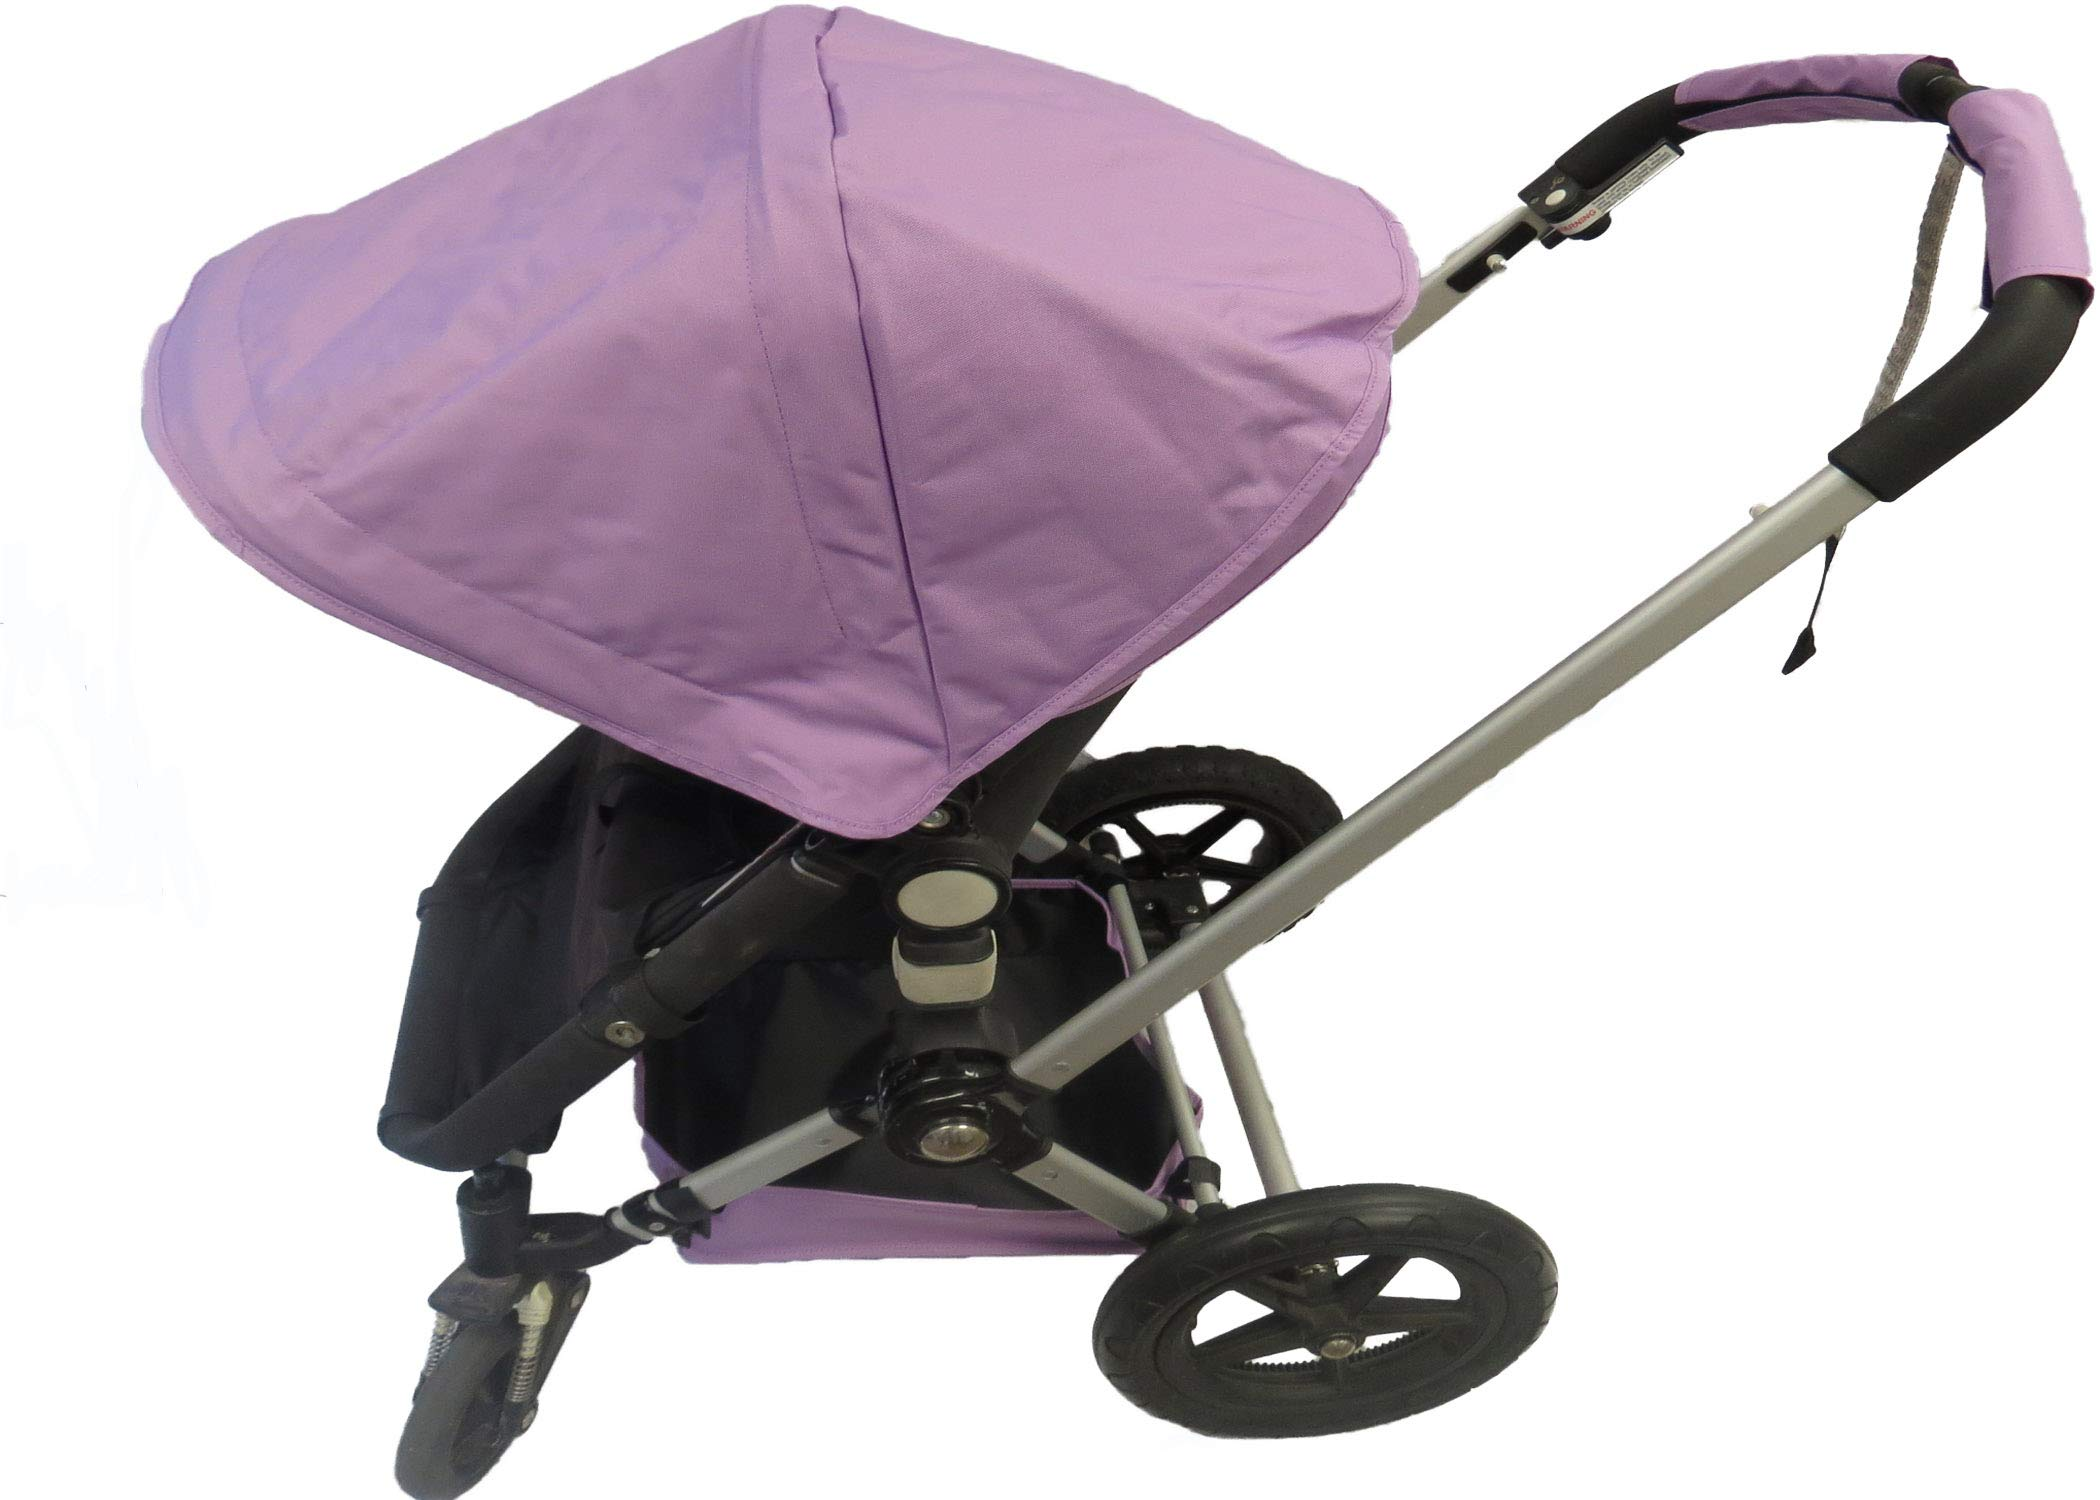 Light Purple Sun Shade Canopy with Wires and Under Seat Storage Basket Plus Free Handle Bar Covers for Bugaboo Cameleon 1, 2, 3, Frog Baby Child Strollers by Ponini (Image #1)